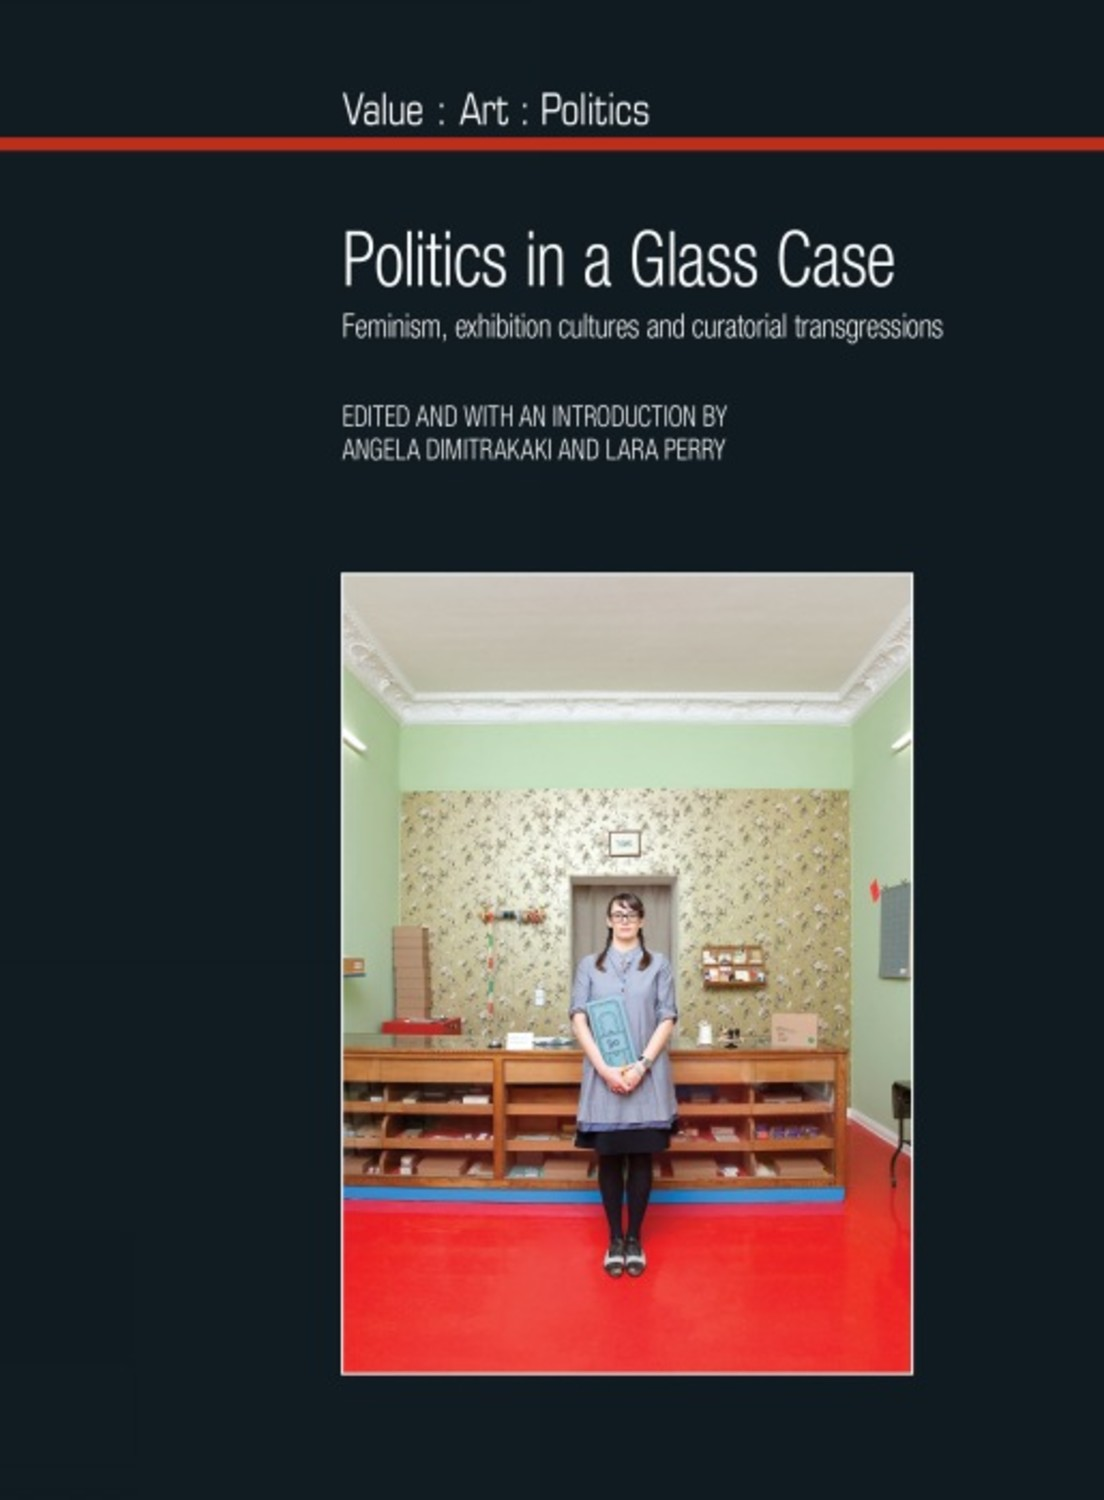 Politics in a Glass Case